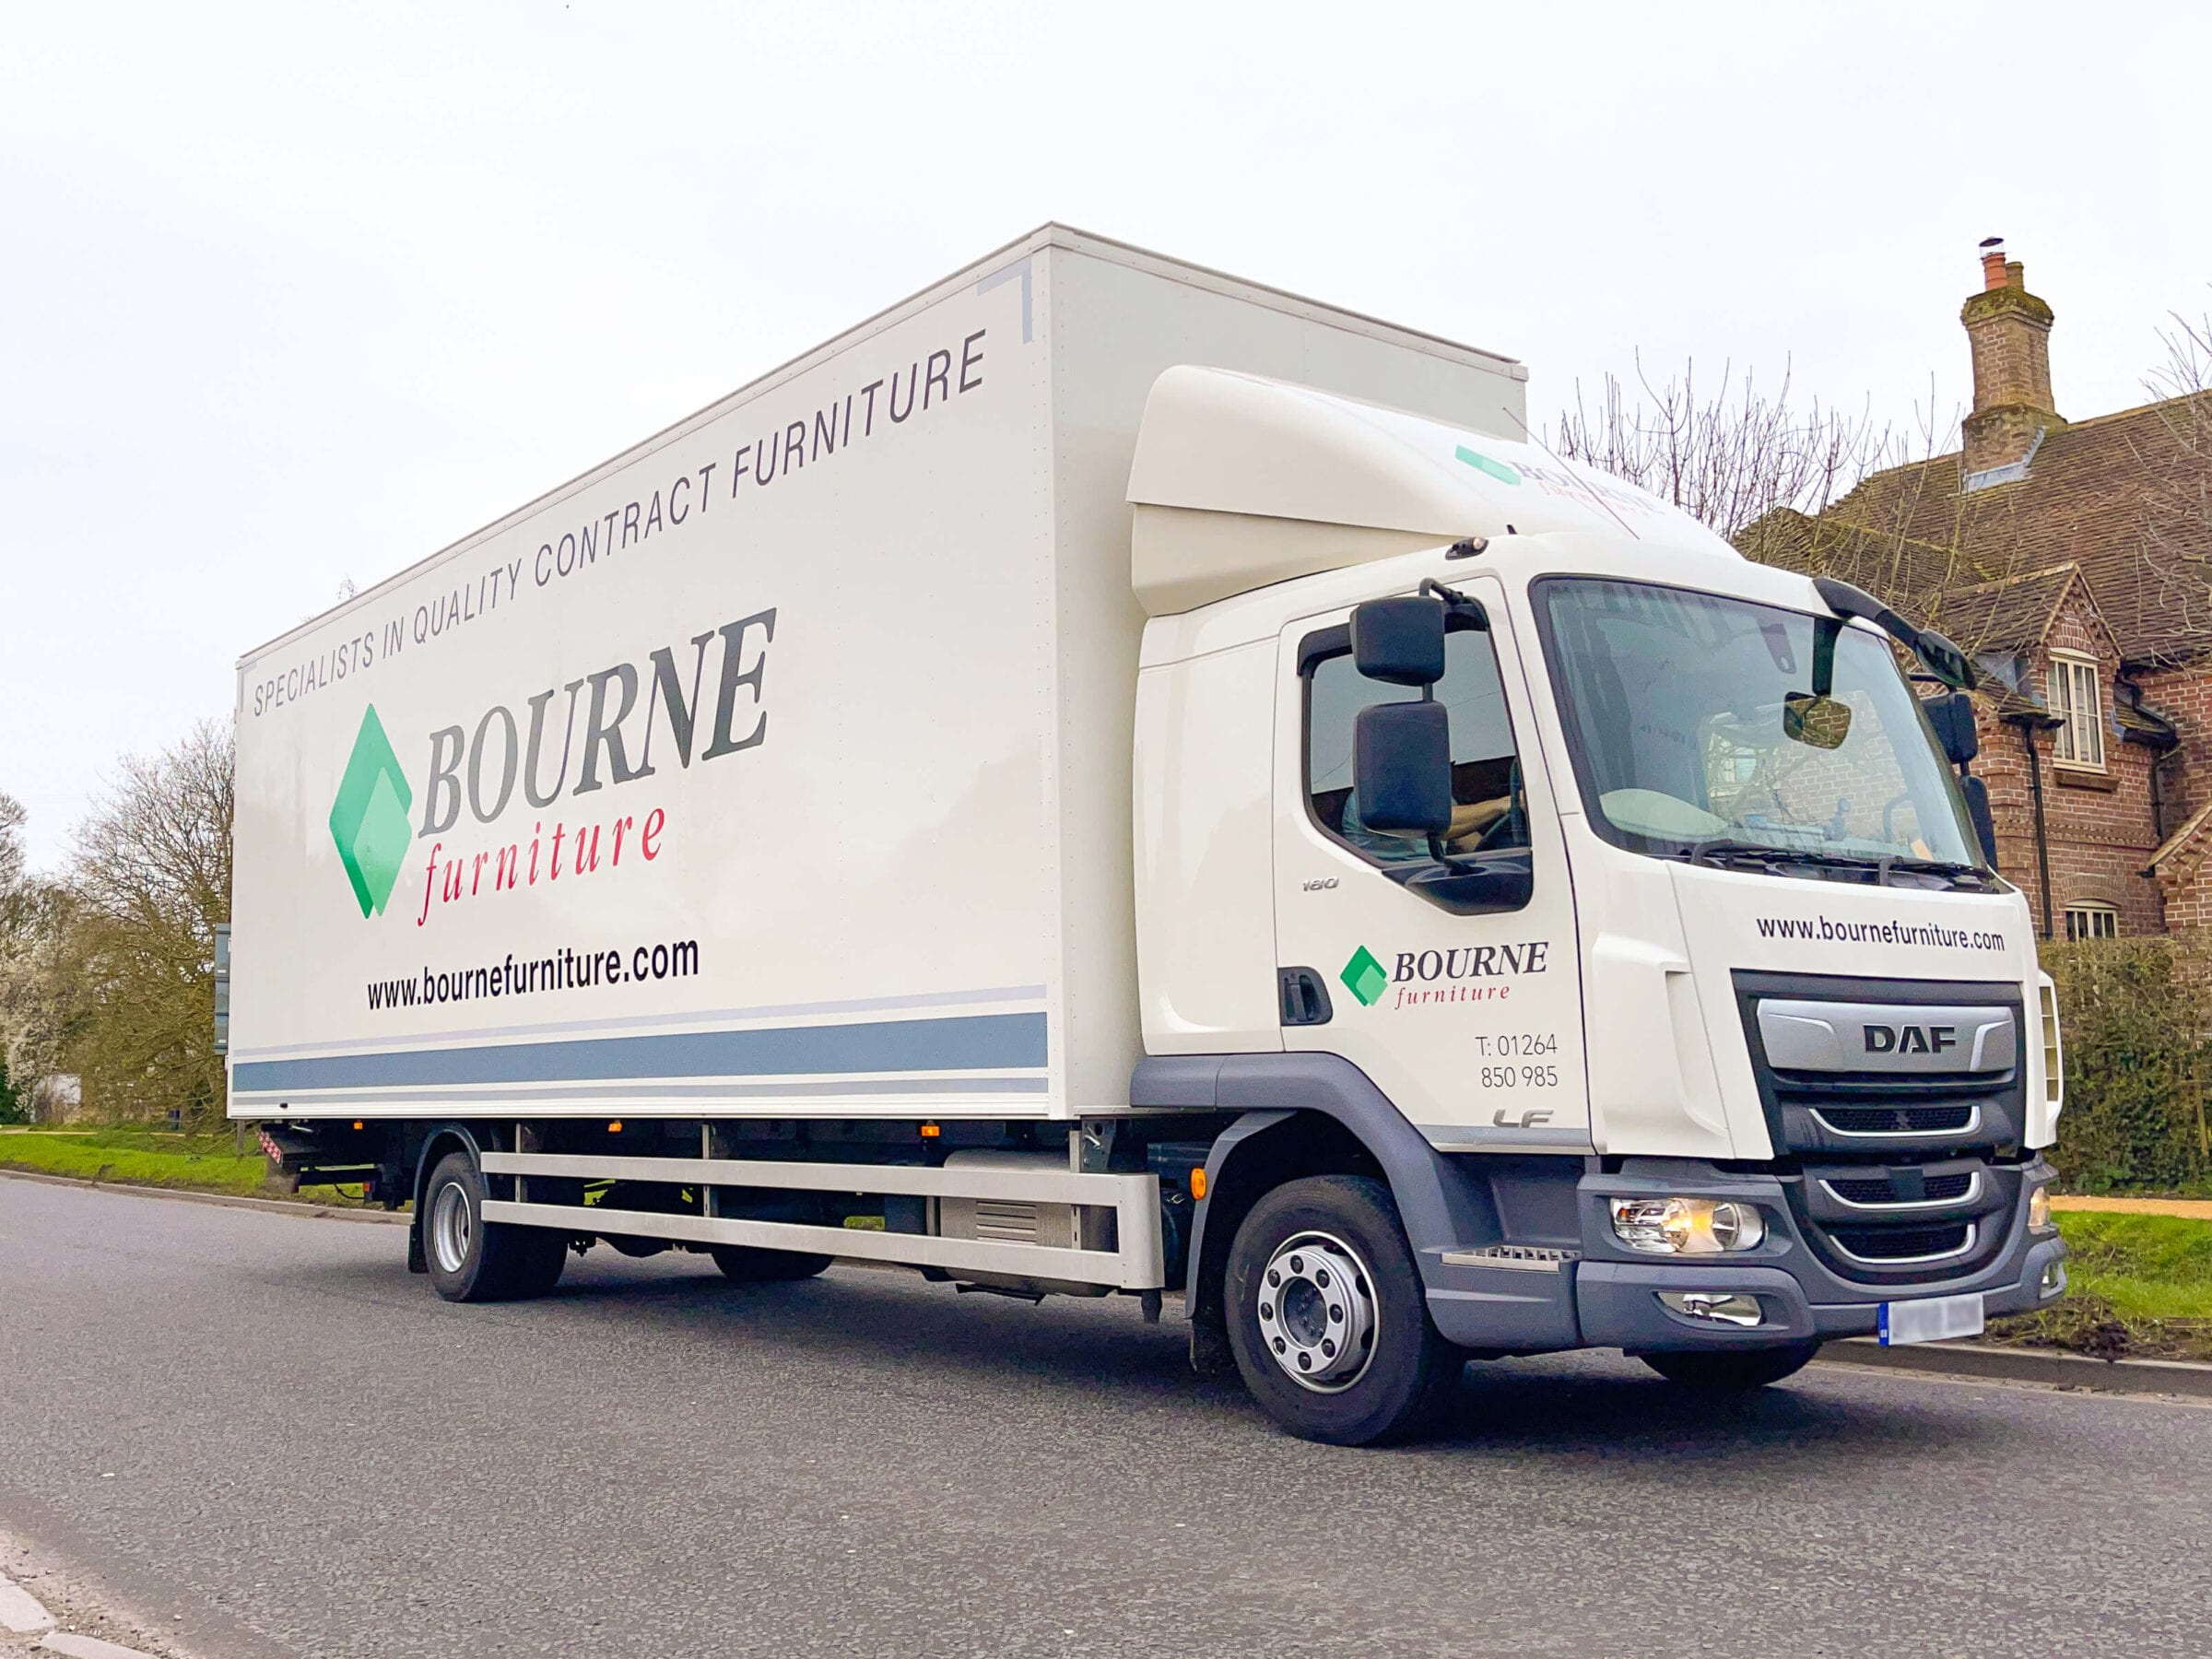 Contract furniture delivery truck